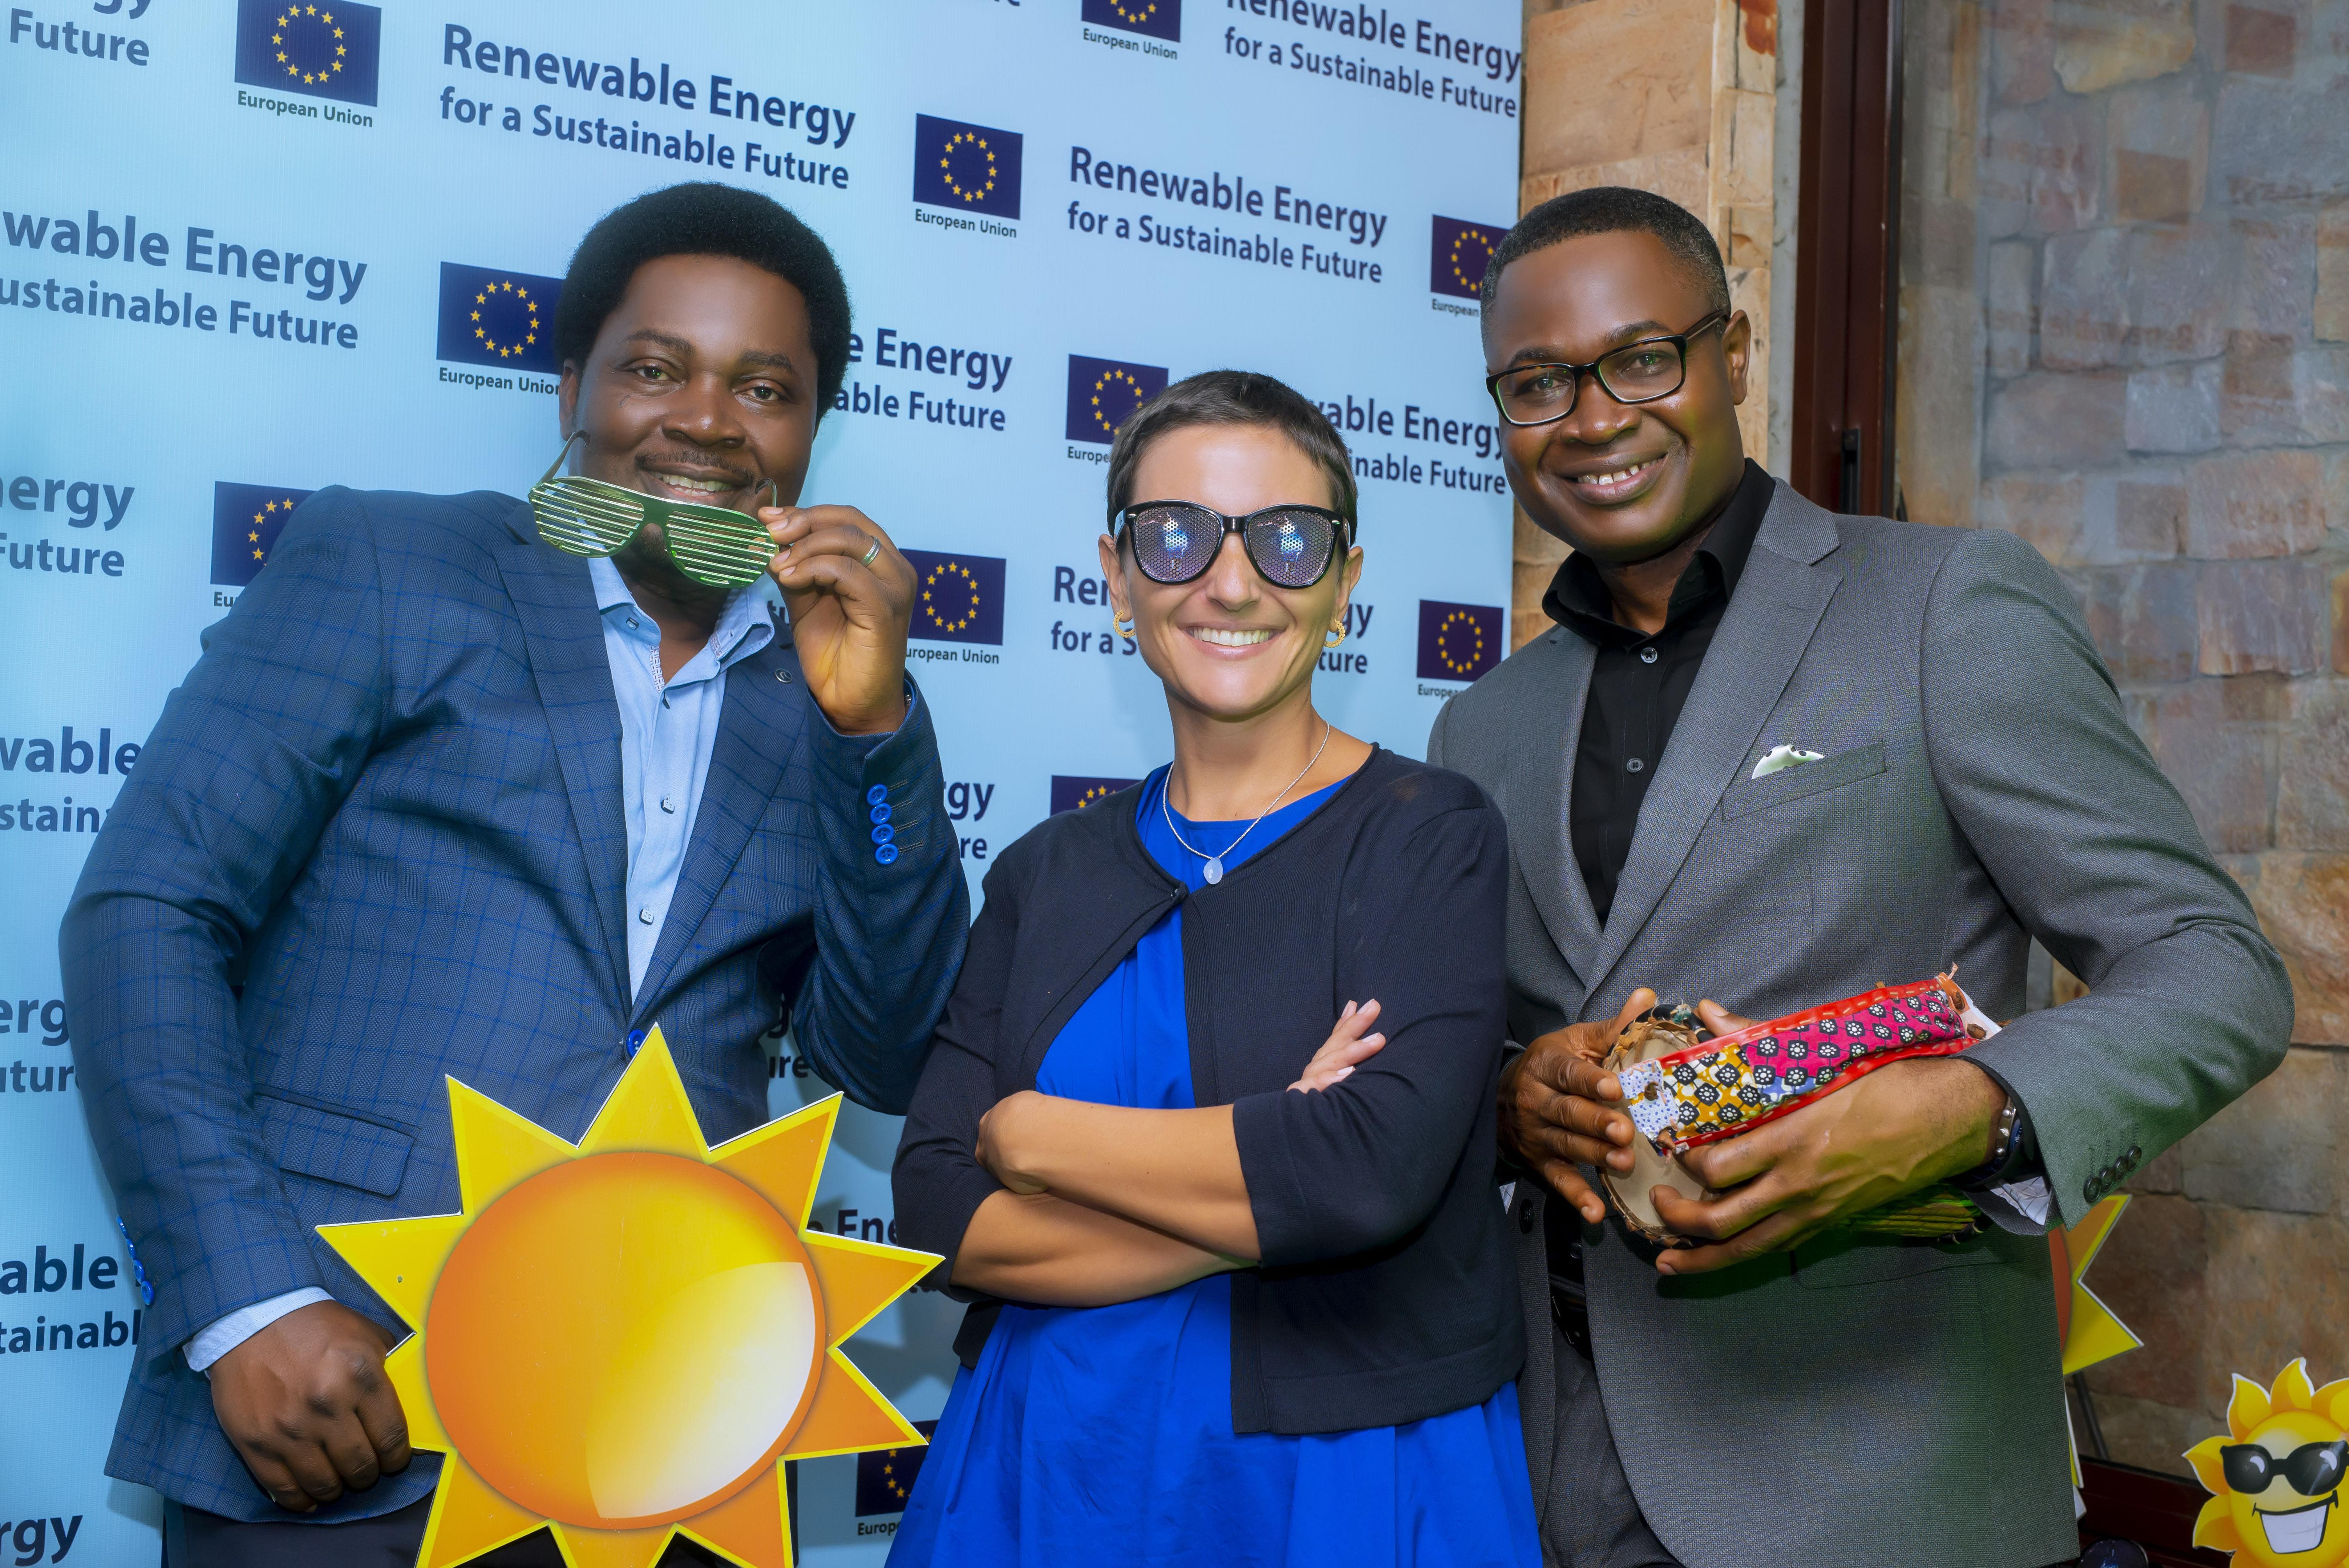 The European Union Beams The Light On Renewable Energy at Green Event